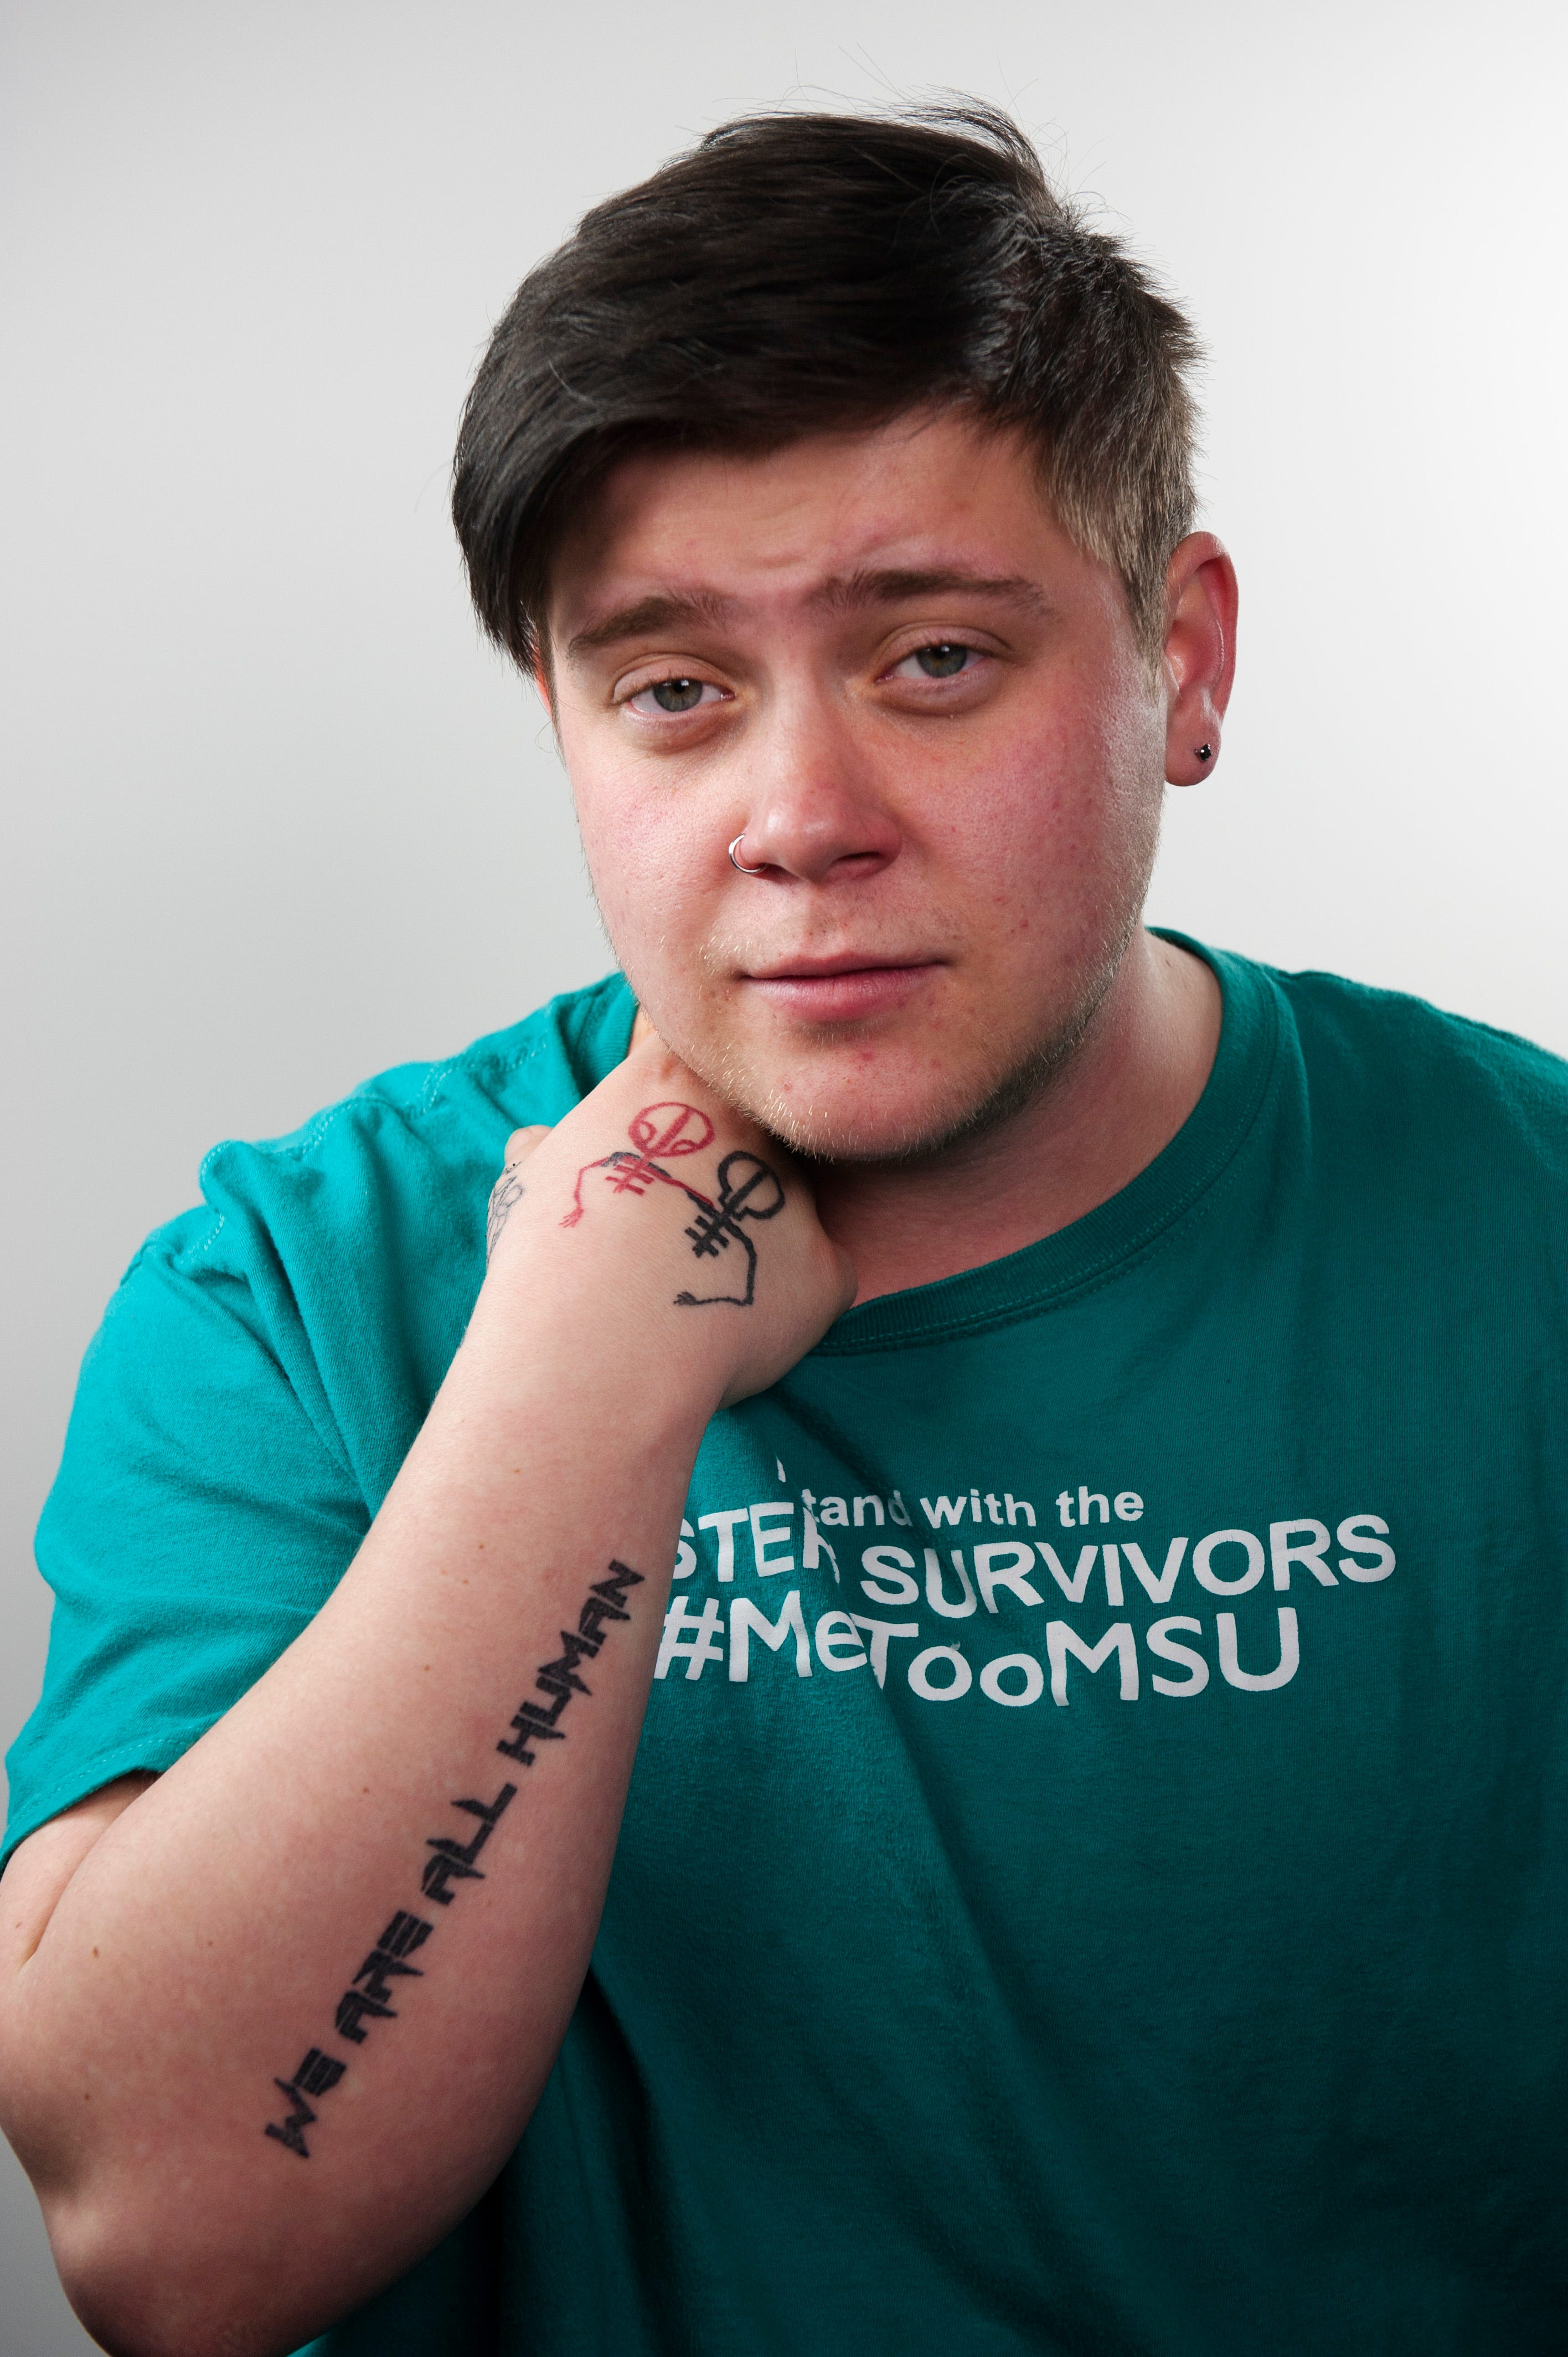 """Zach Ashcraft, 25, of Mason, Michigan shows his """"We are all human"""" tattoo.  Ashcraft was known as Meaghan when as a 10-year-old female gymnast he met and was later abused by Larry Nassar. Ashcraft  is transgender and now identifies as male."""